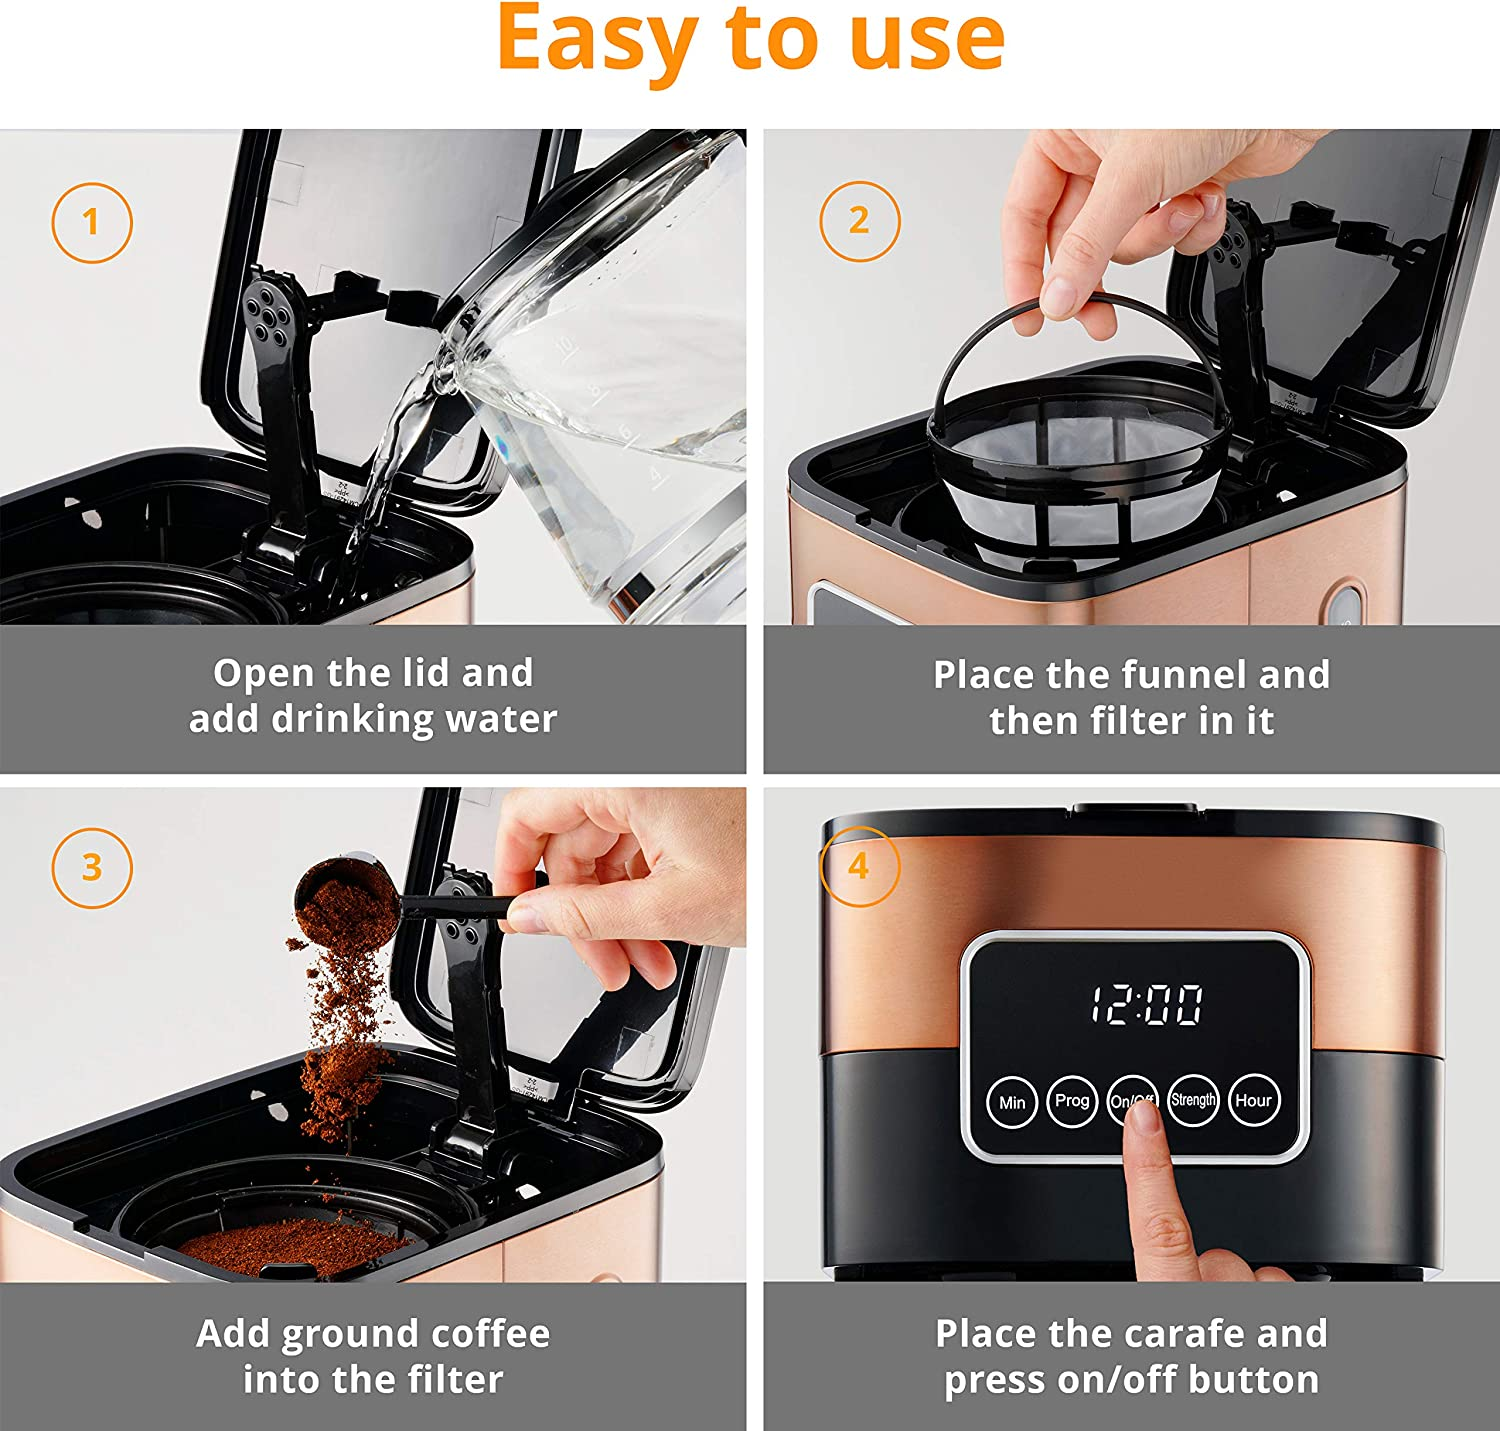 Gastrorag 10-Cup Drip Coffee Maker - Programmable Coffee Machine with Glass Carafe, Keep Warm, Permanent Filter, Copper